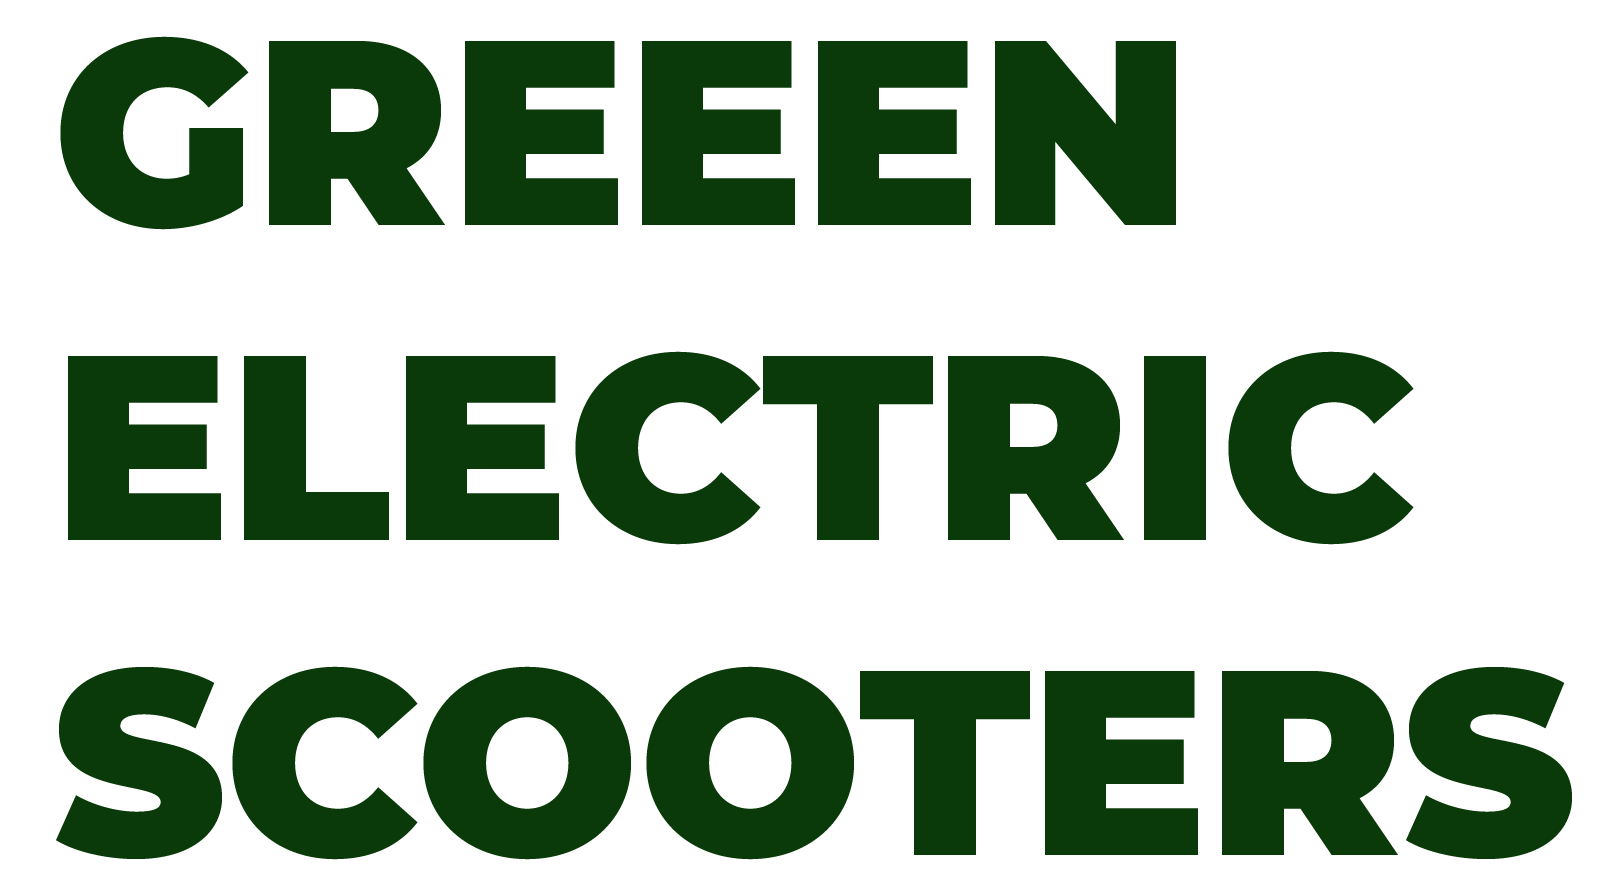 Green Electric Scooters